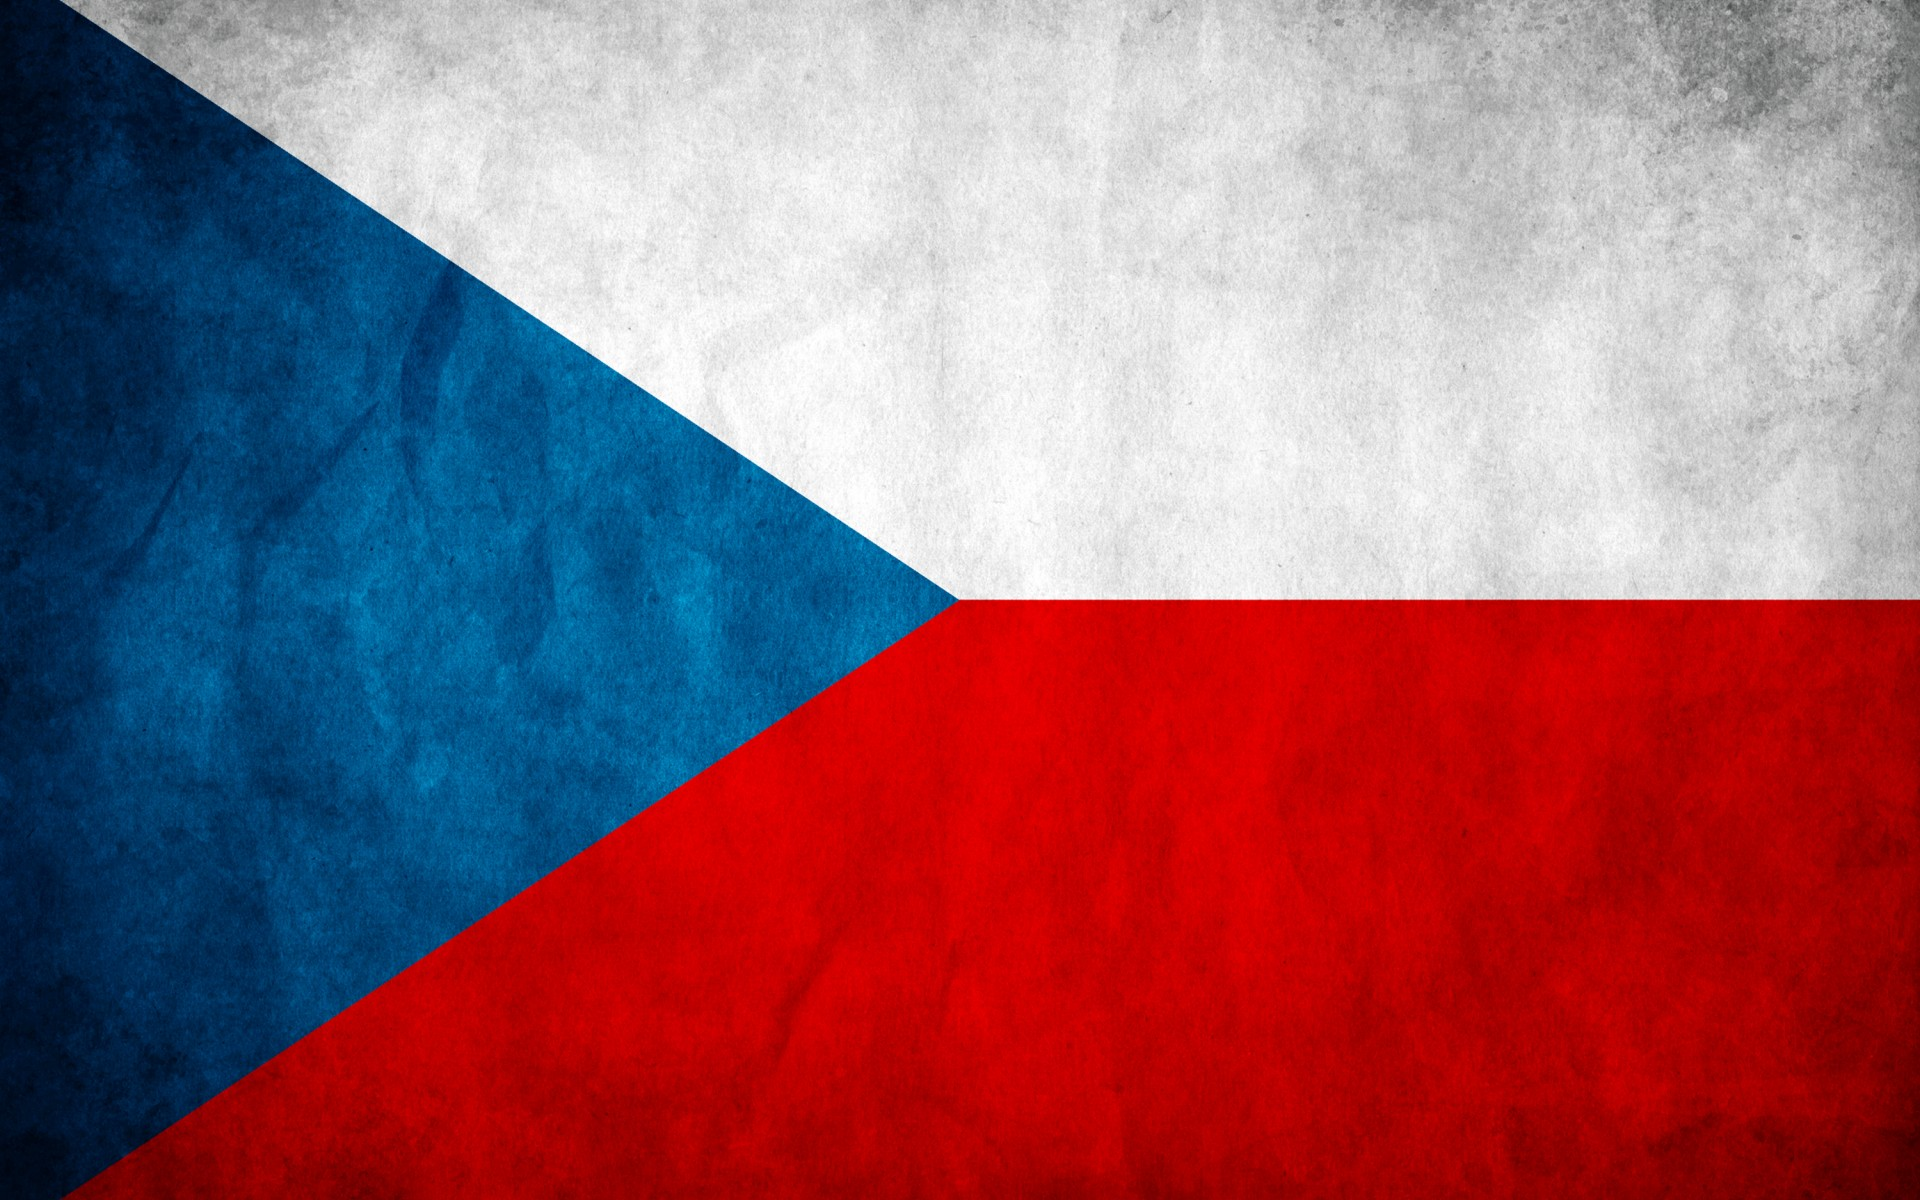 Flags czech republic wallpaper 1920x1200 18342 WallpaperUP 1920x1200